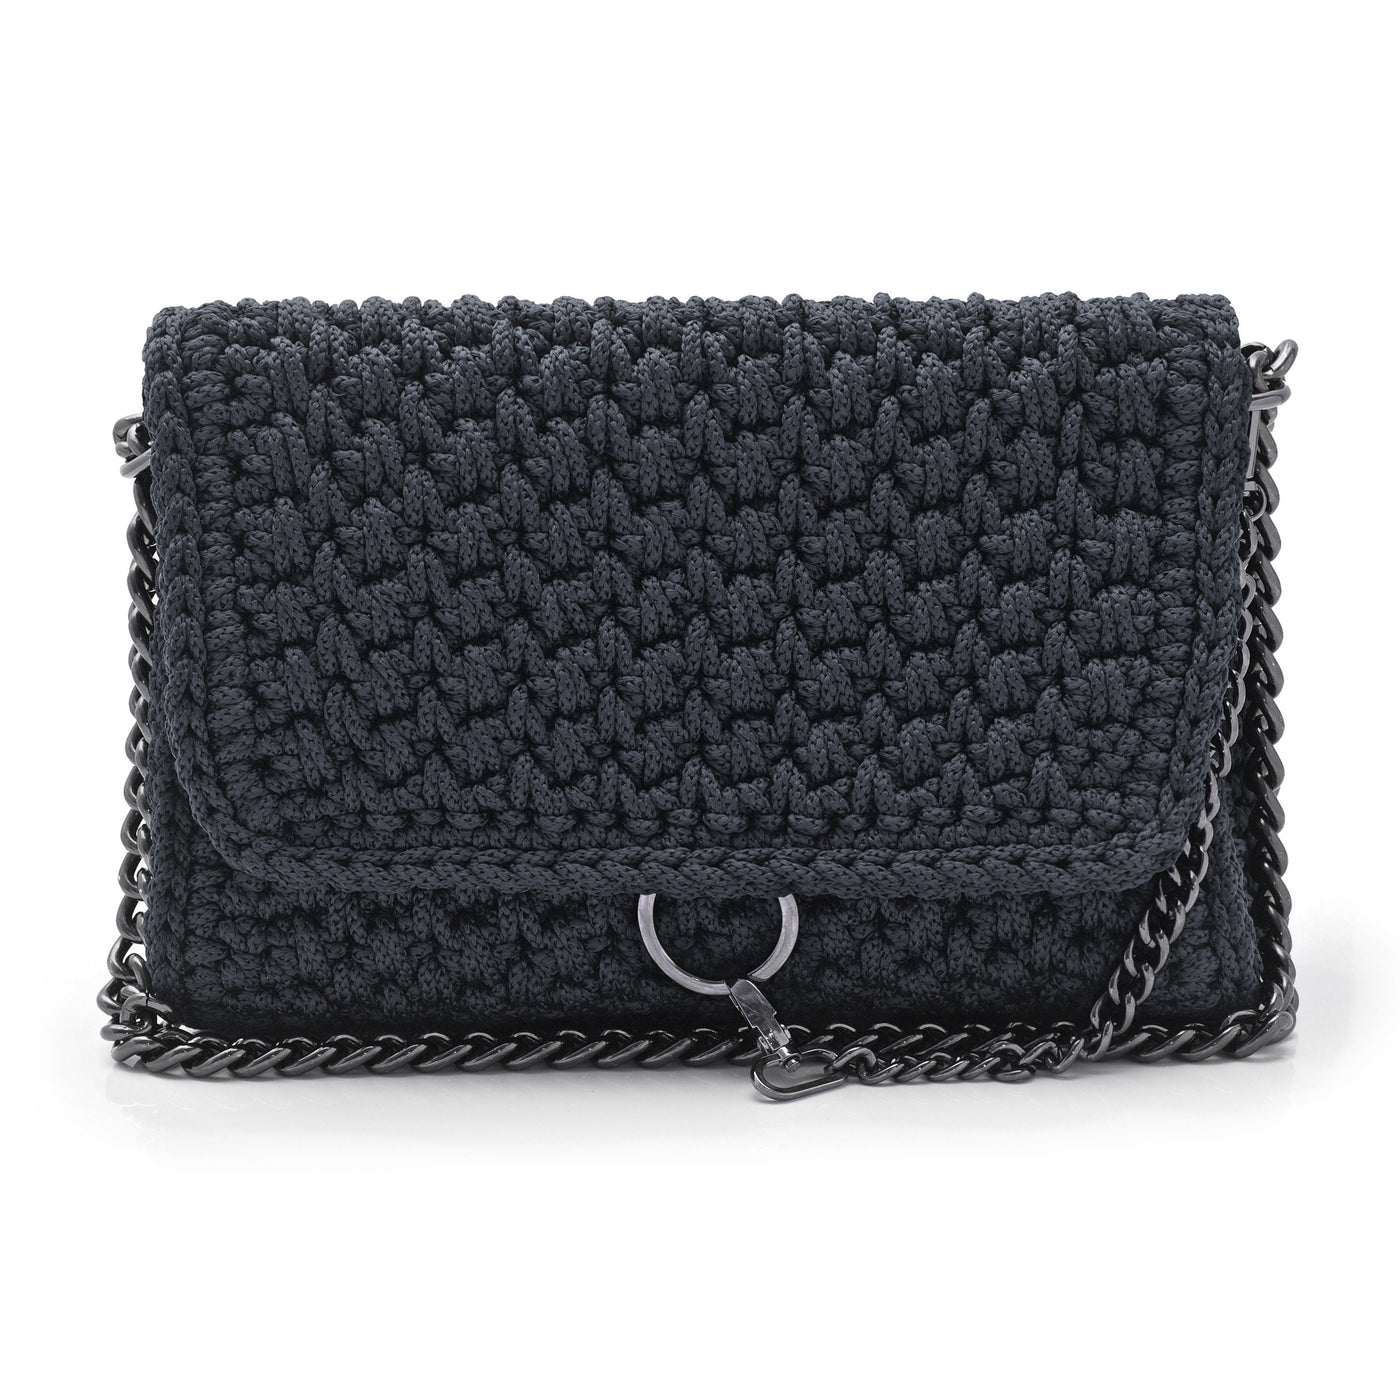 Crochet 'Link' Shoulder Bag